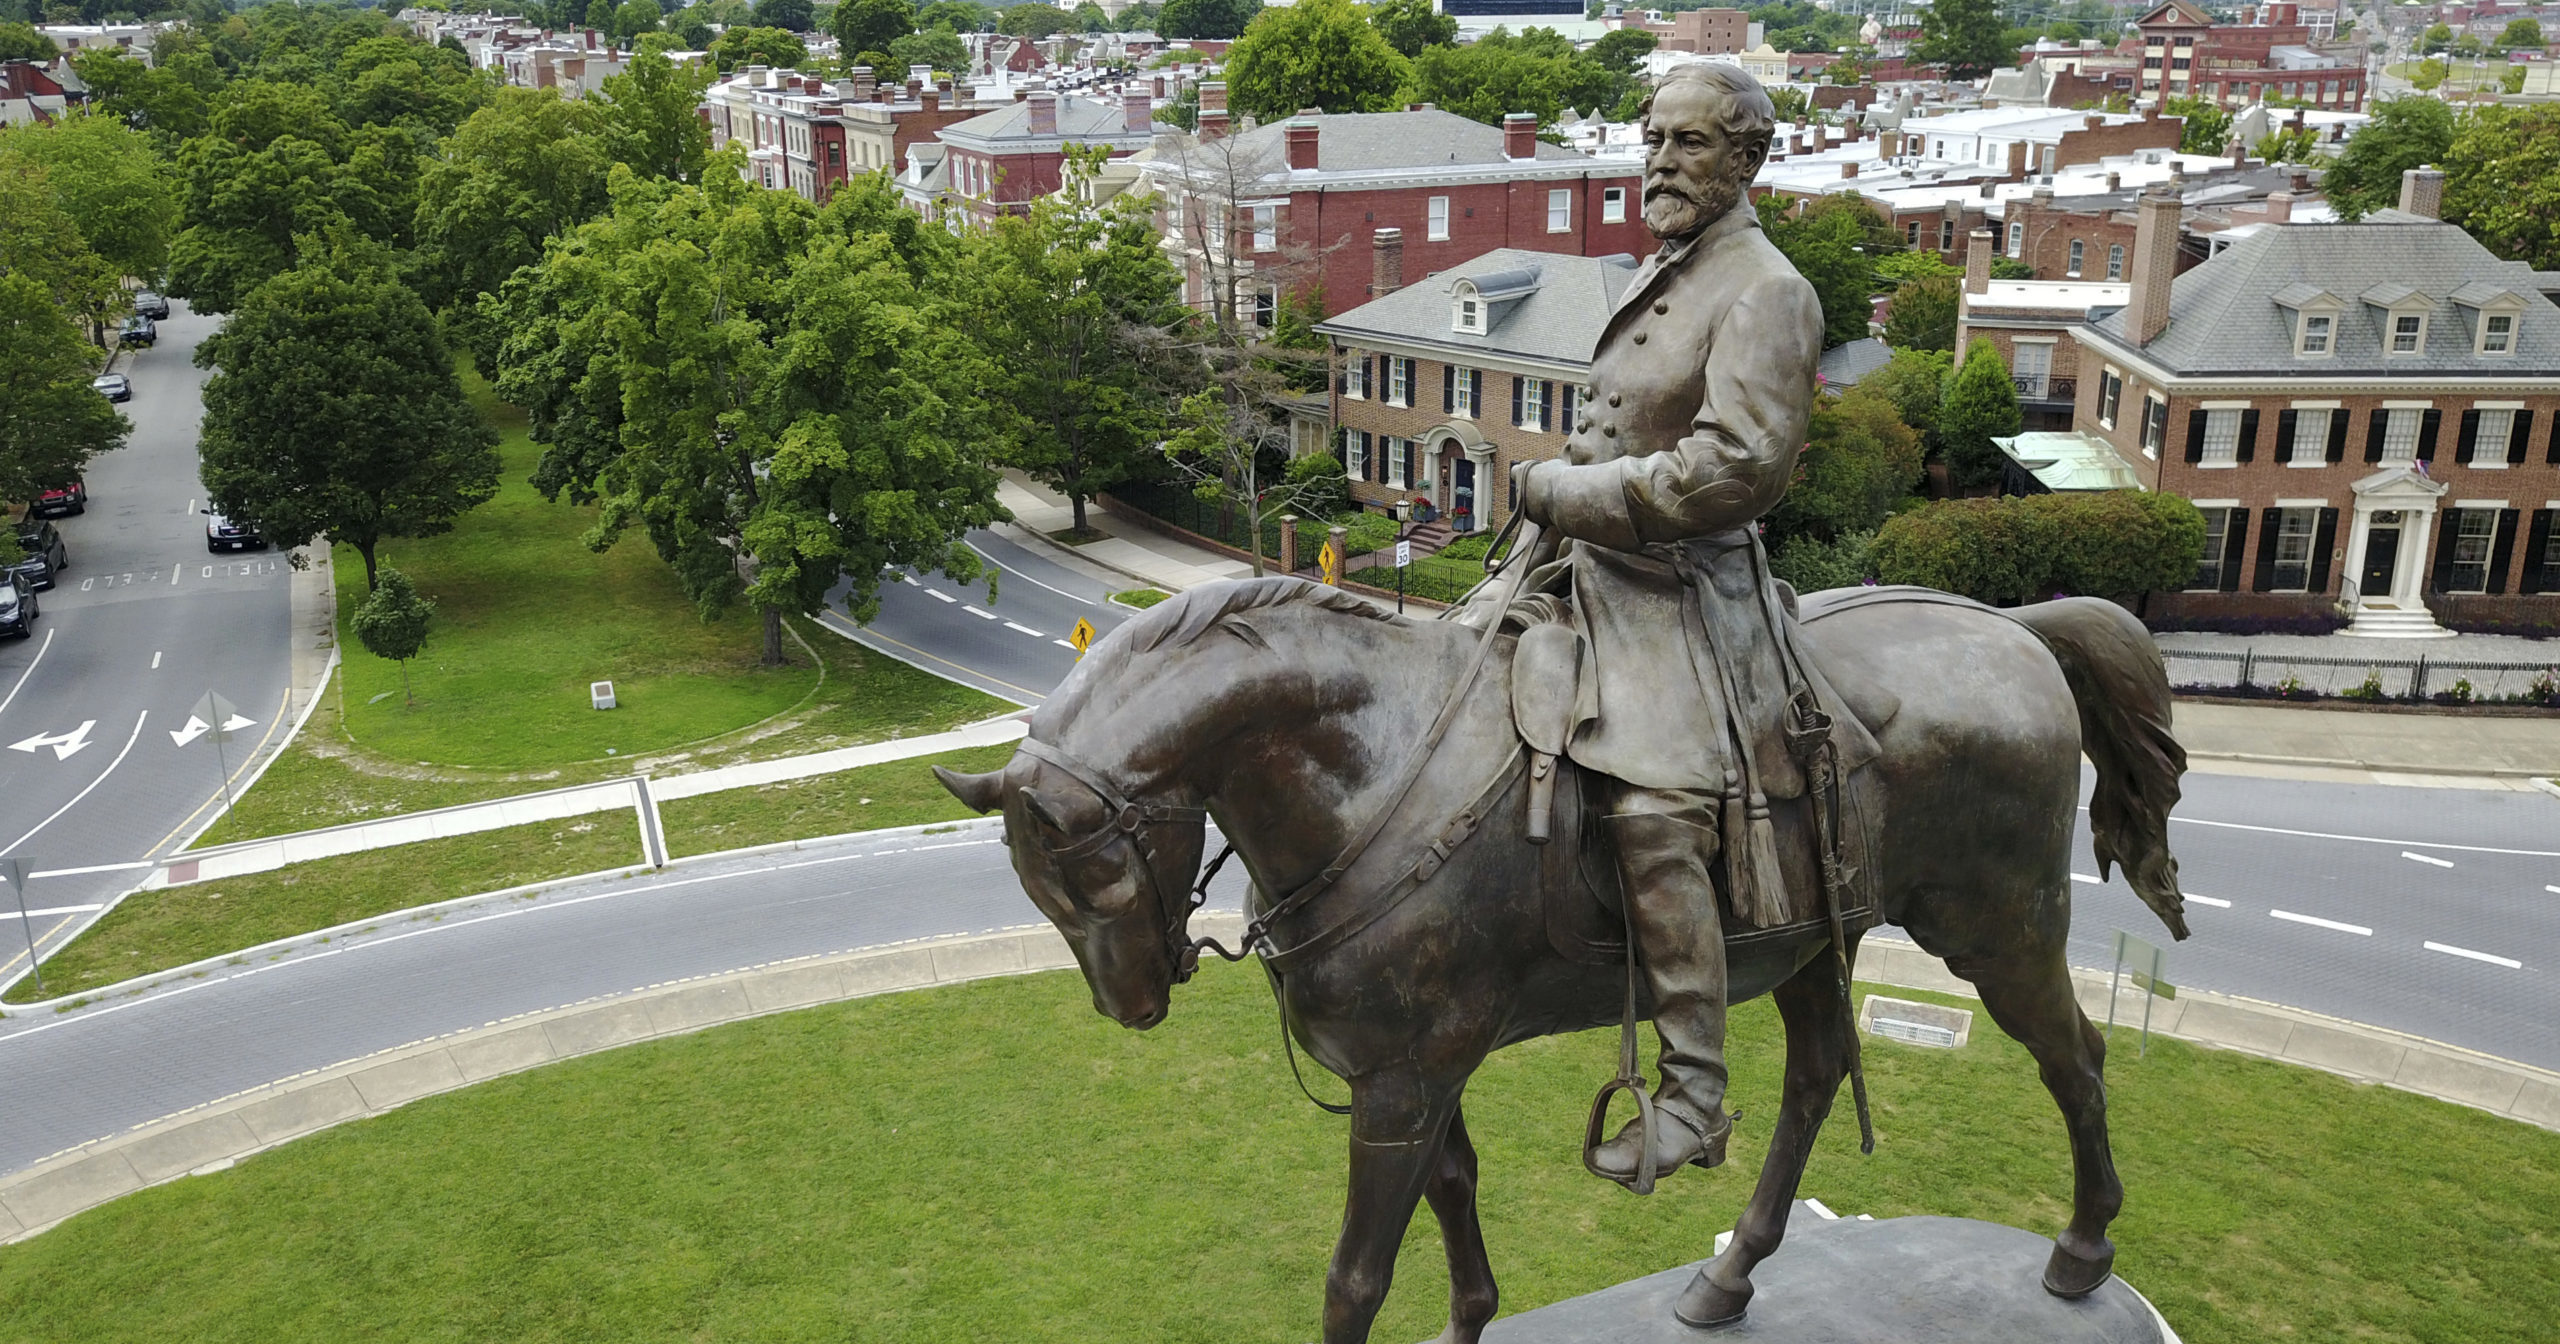 This June 27, 2017, file photo shows the statue of Confederate General Robert E. Lee that stands in the middle of a traffic circle on Monument Avenue in Richmond, Virginia. A lawsuit seeking to prevent Virginia Gov. Ralph Northam's administration from removing the statue can proceed, a judge ruled on Aug. 25, 2020.